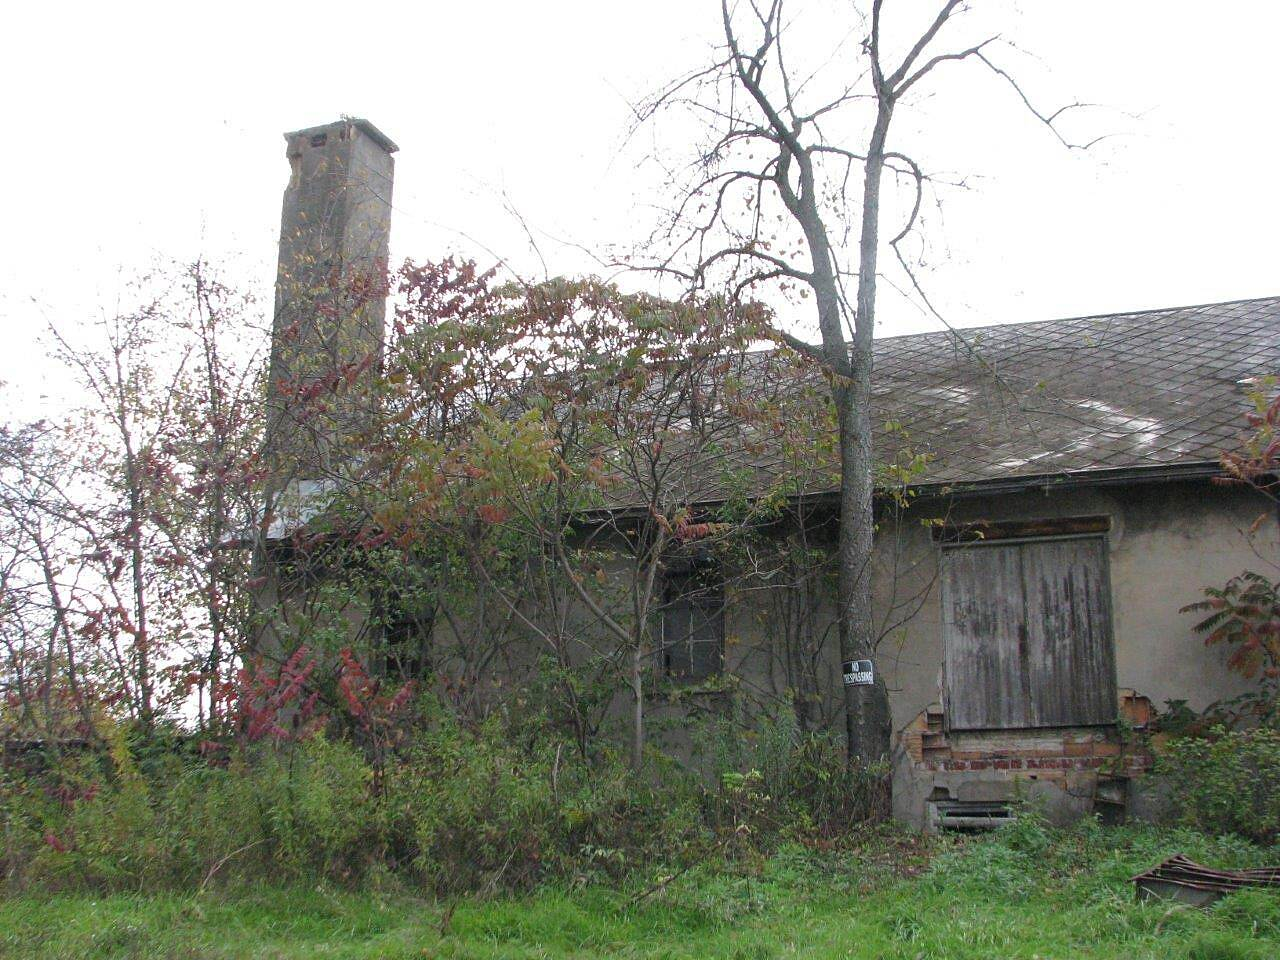 Western Reserve Greenway Old Building Old barn or building